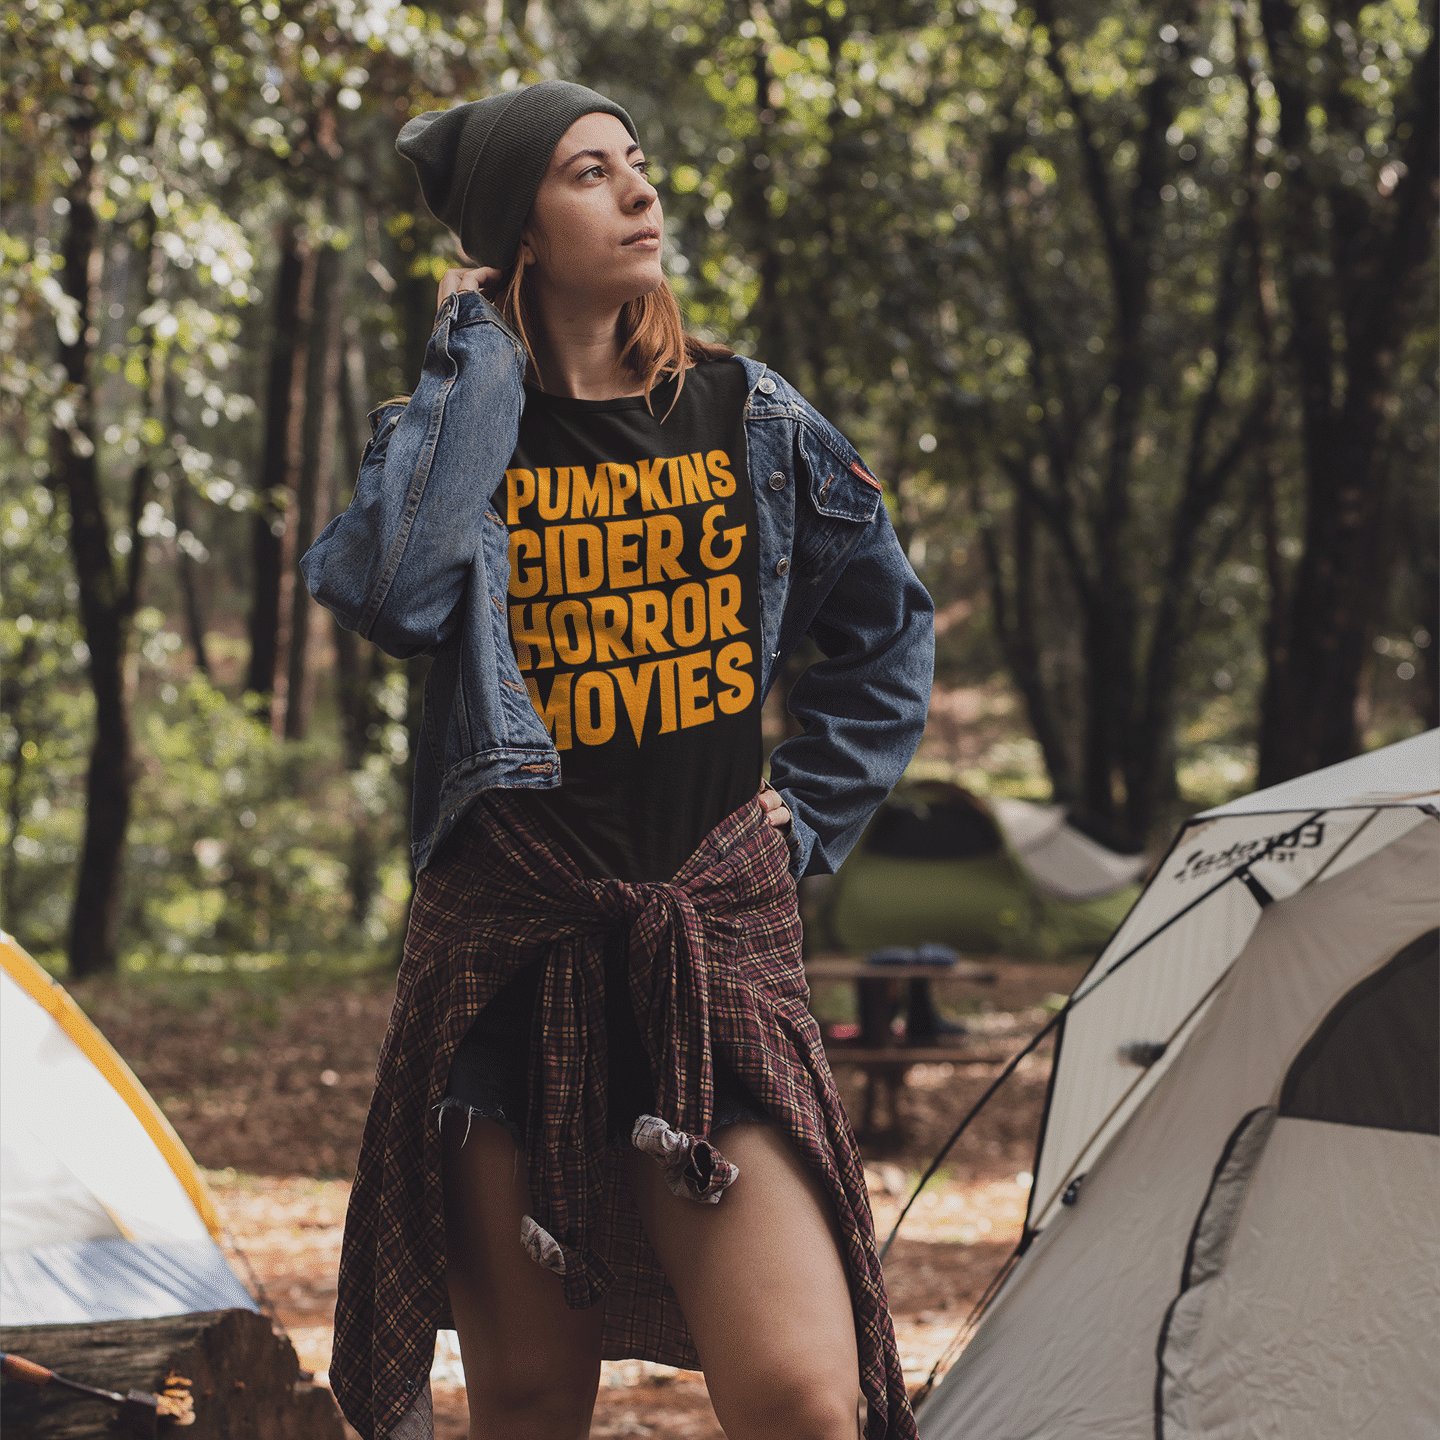 t-shirt-mockup-of-a-woman-at-a-camping-site-with-her-dog-30462-Copy.png